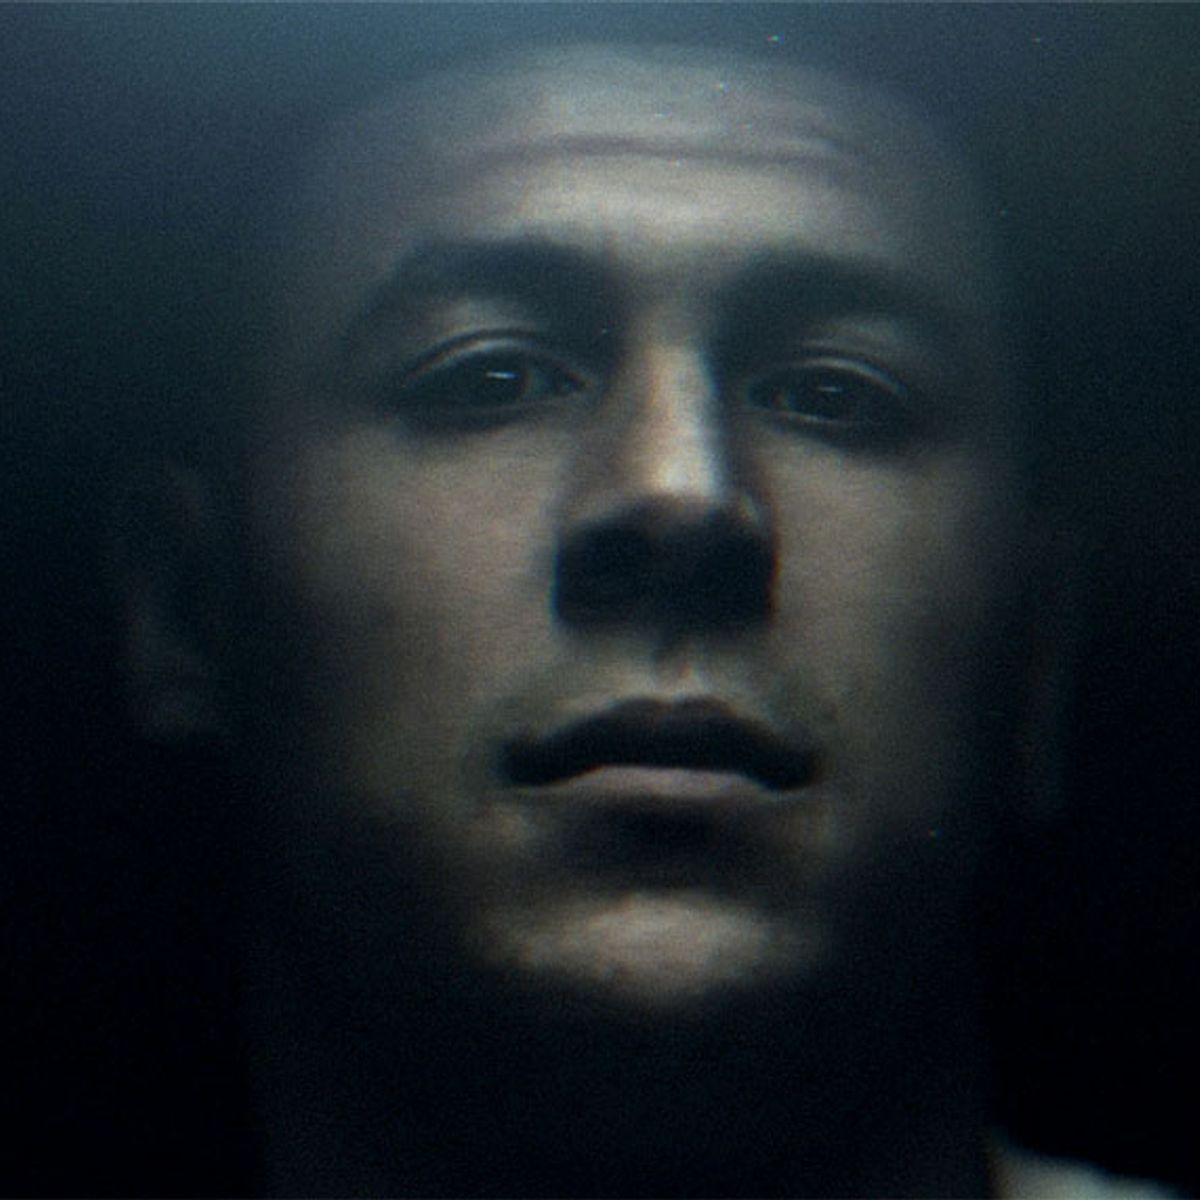 The Netflix Aaron Hernandez doc's baffling obsession with sexuality is distracting and dangerous